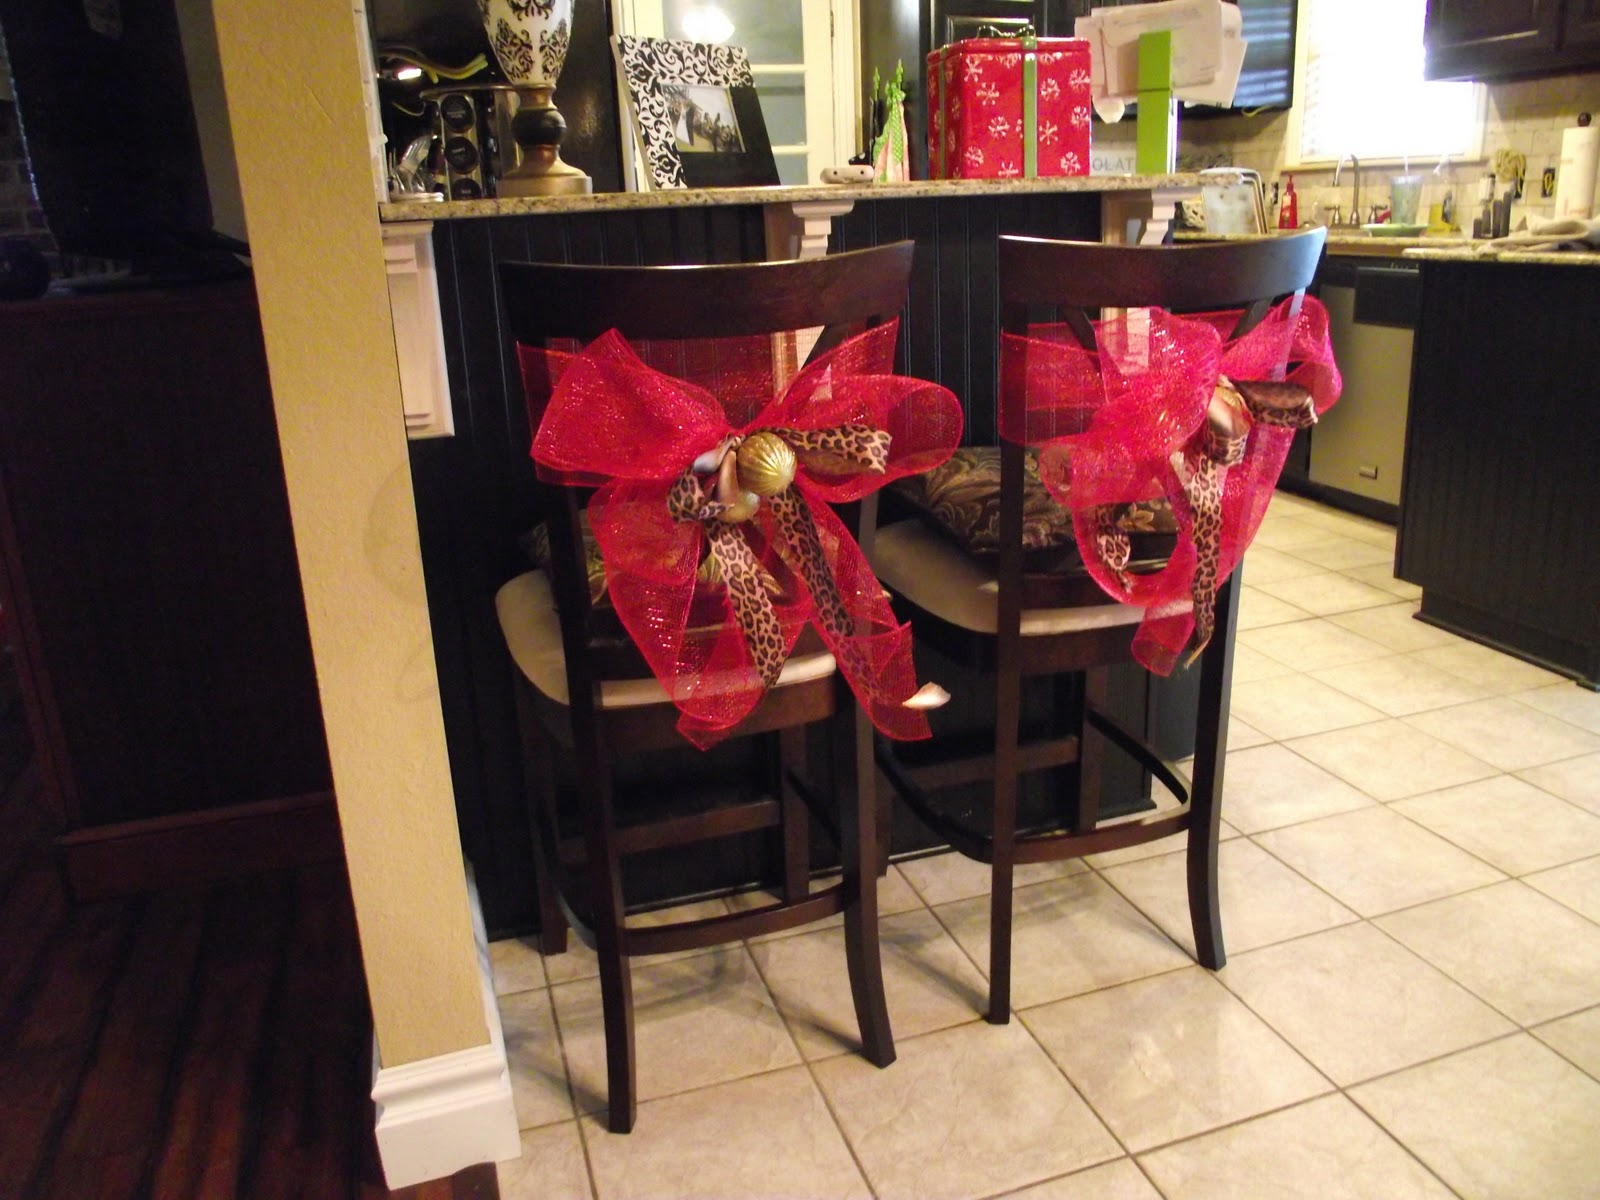 Copy cat looks diy christmas chair tiebacks for Christmas decorating ideas for dining room chairs